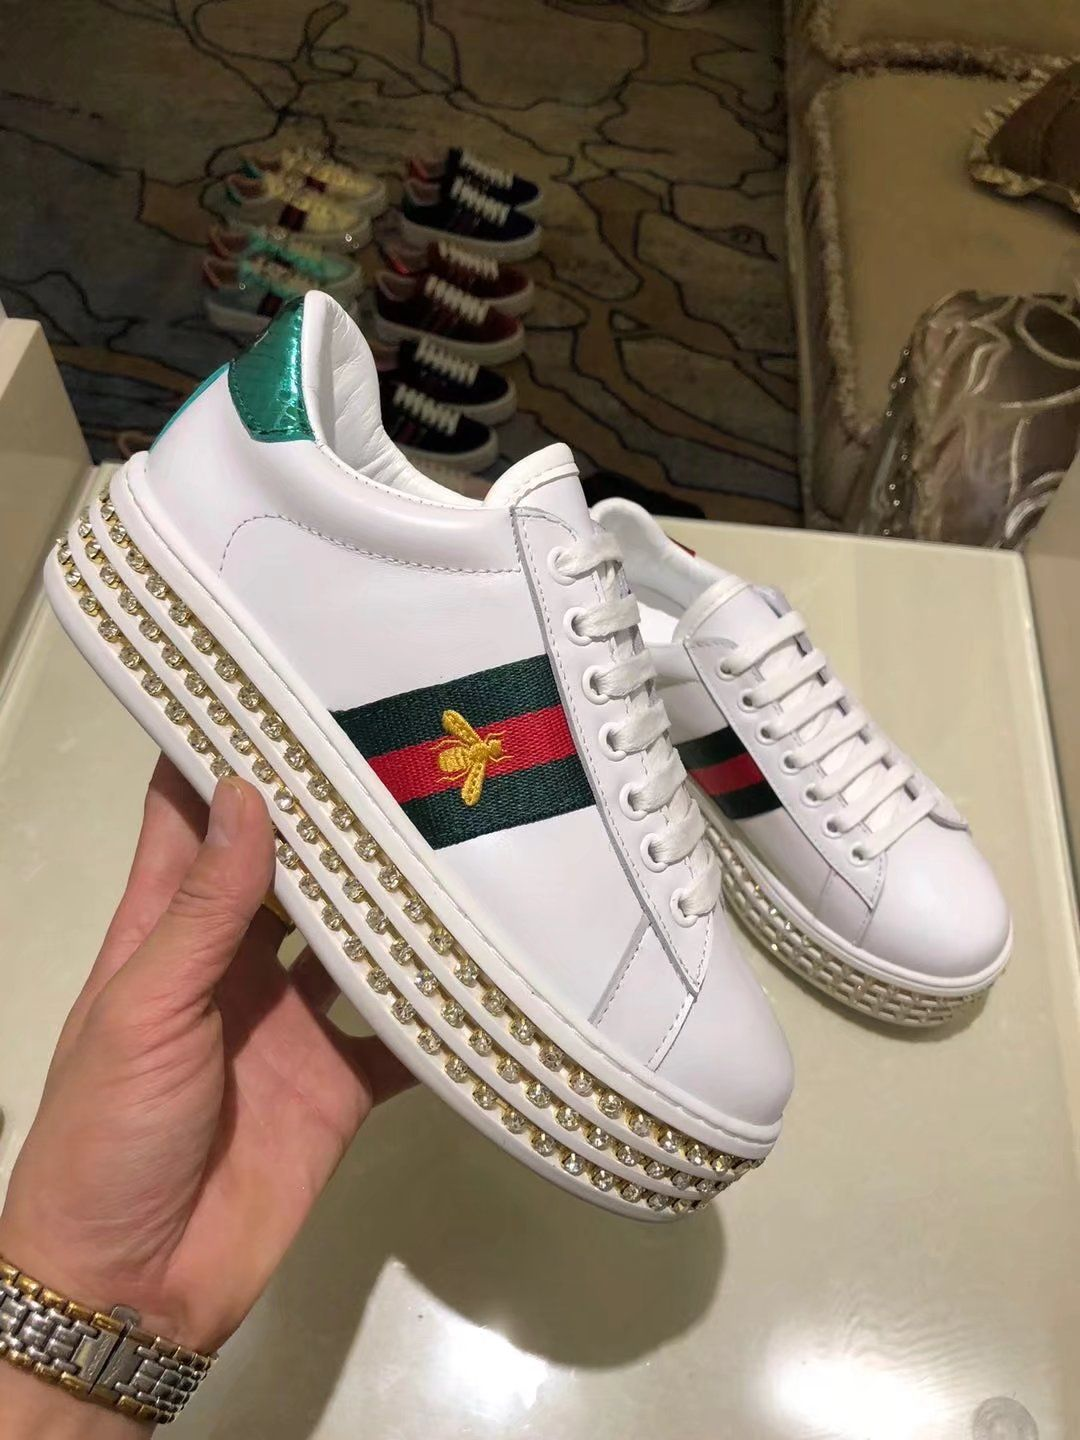 74eefd219c7 Replica GUCCI Ace sneaker with crystals White Leather Women Size 35-40 ID   ID